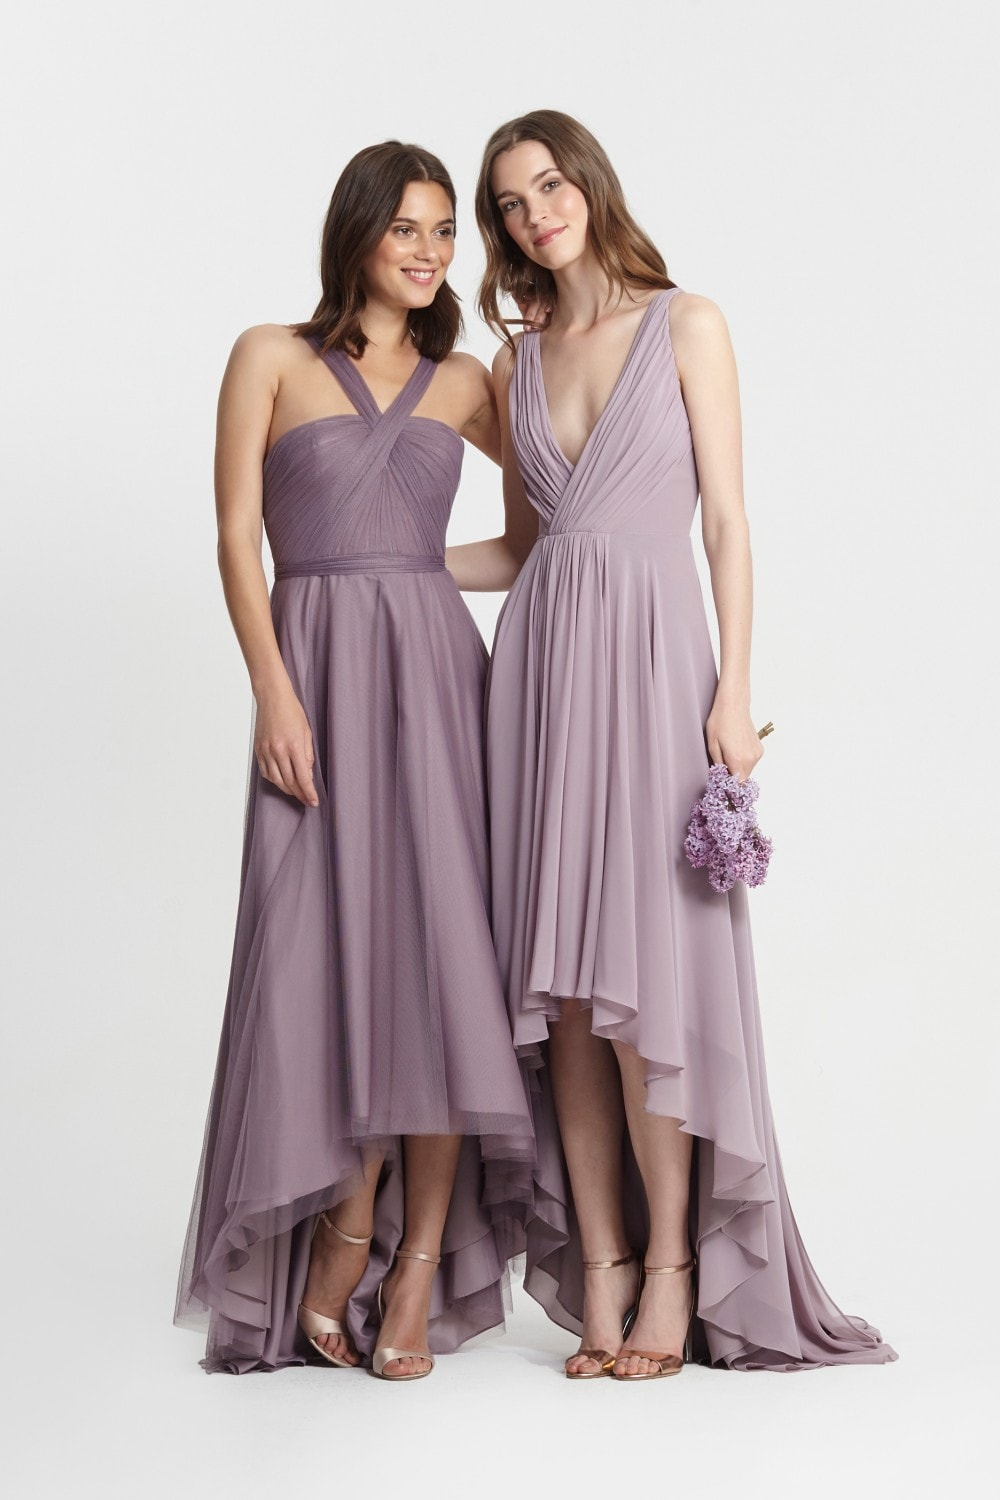 Bridesmaids Dresses Light Blue